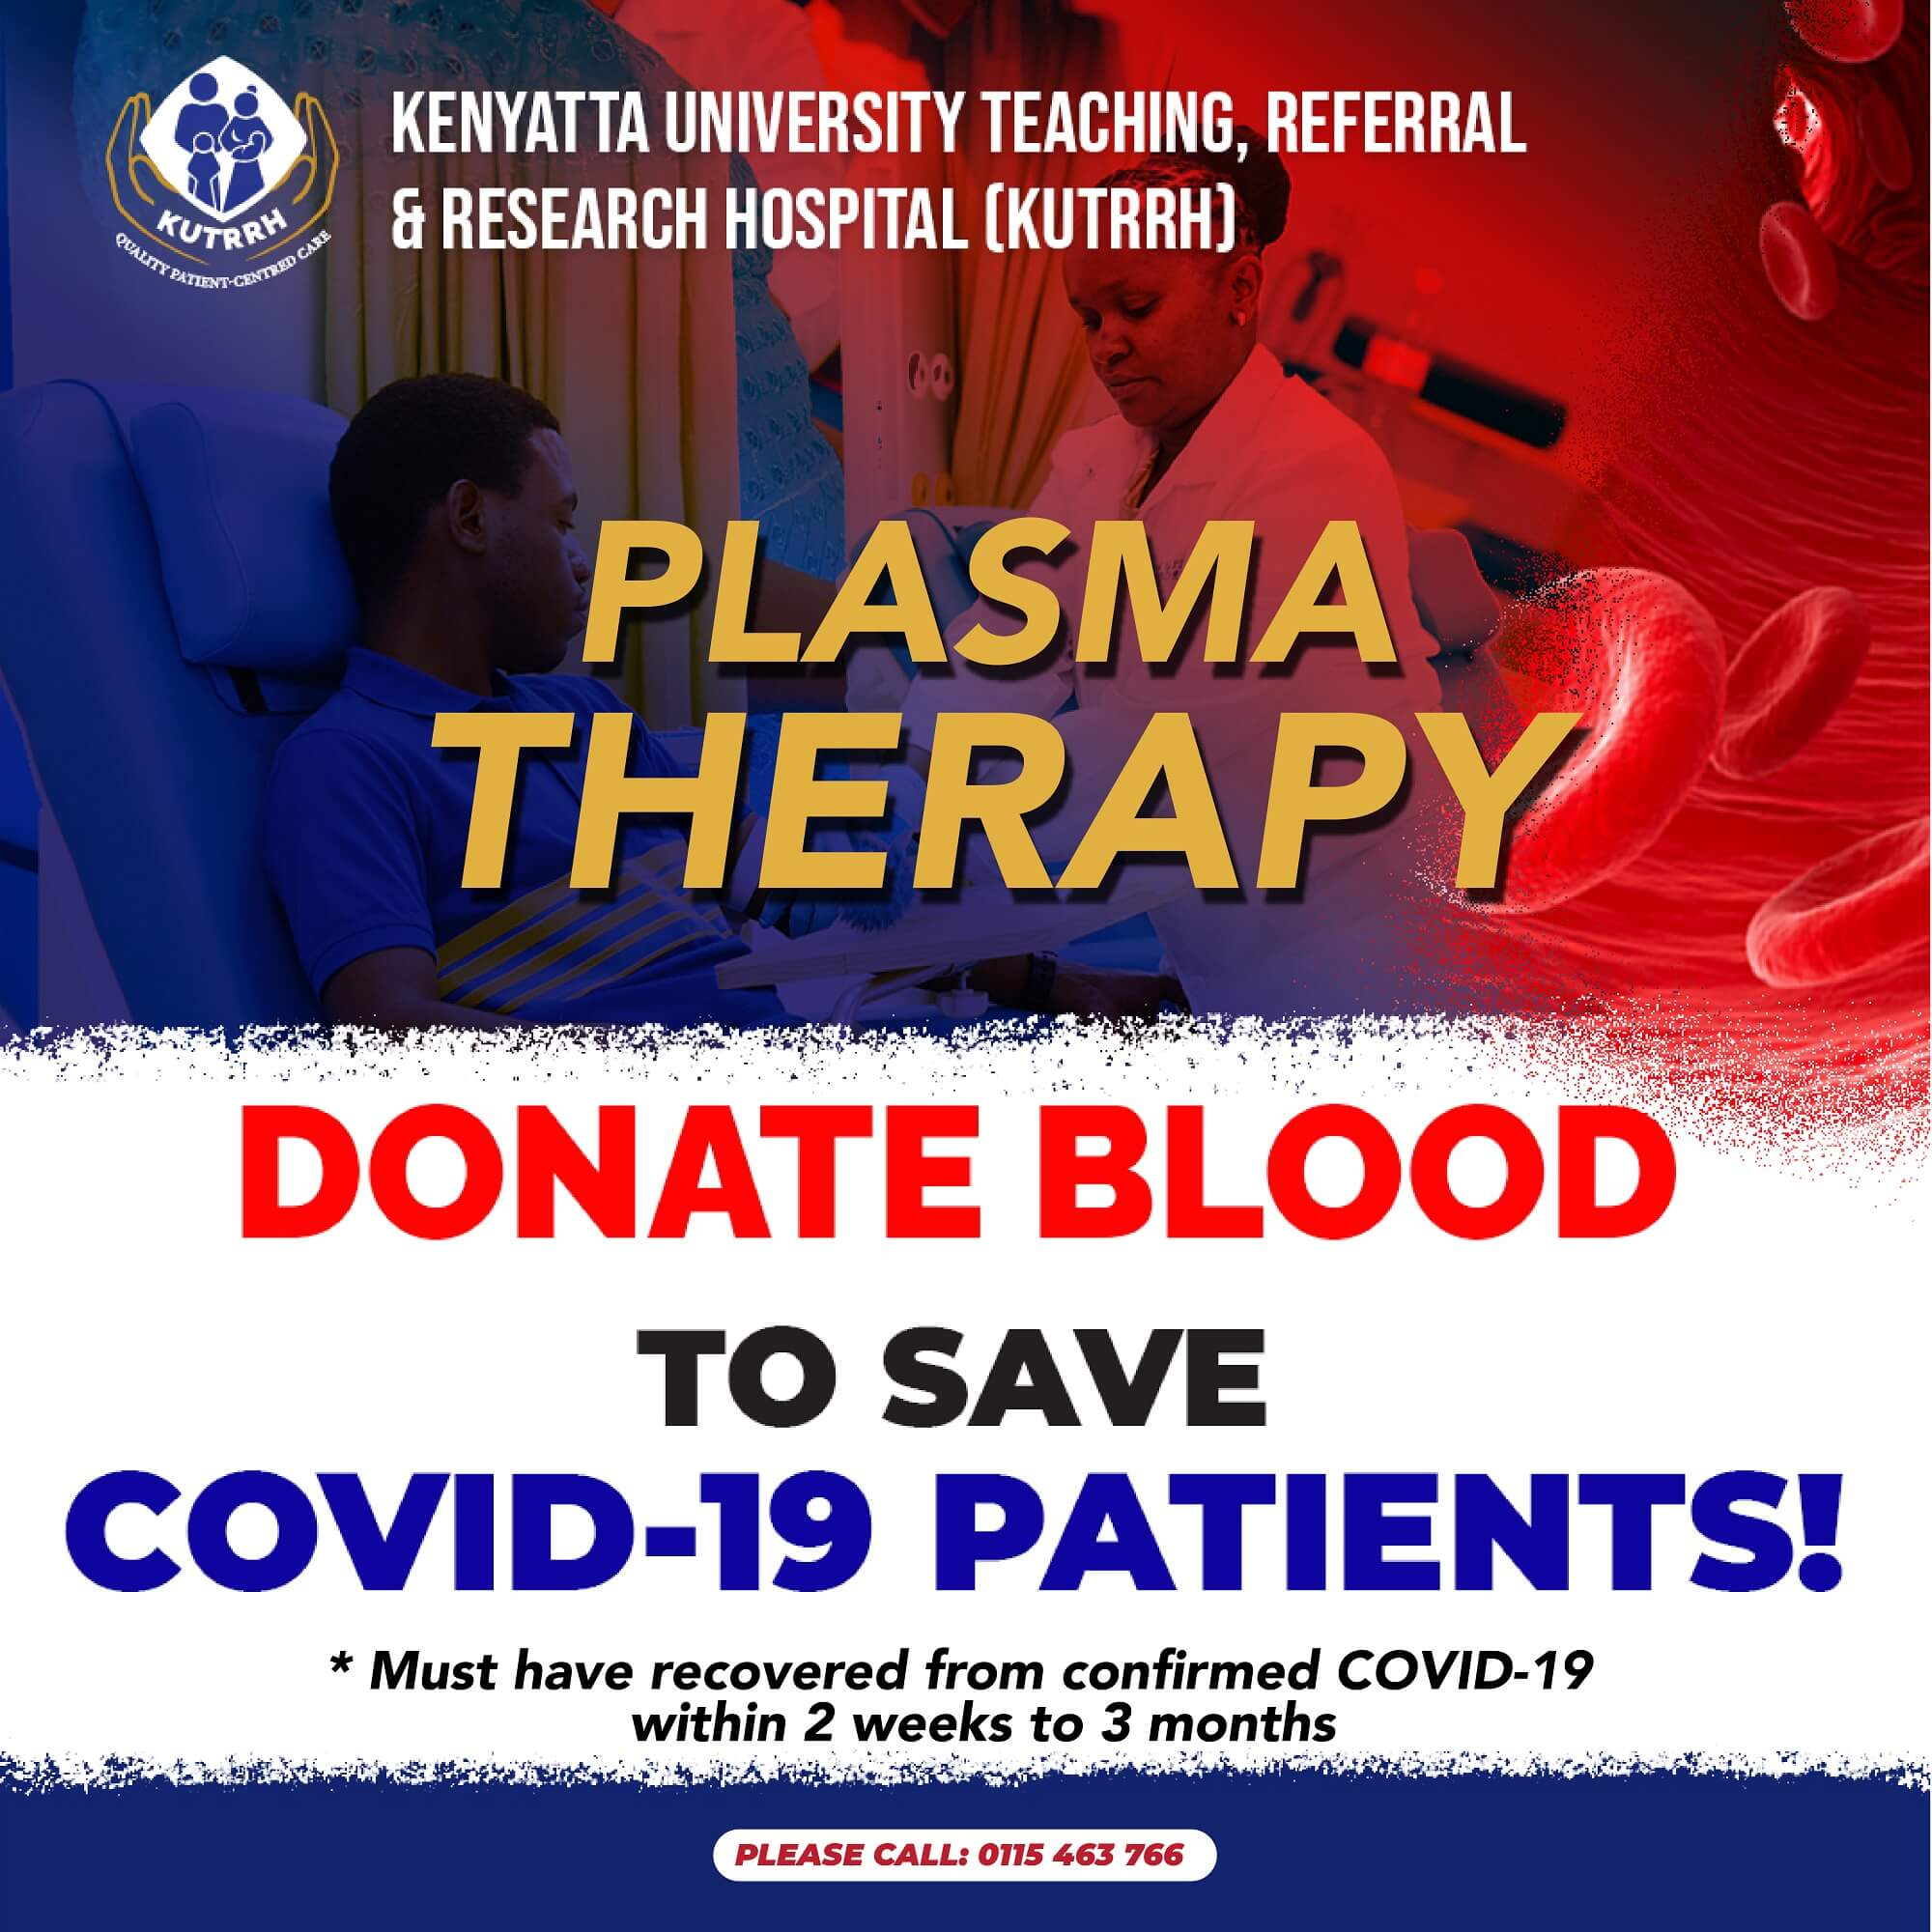 KUTRRH Convalescent Plasma Therapy Blood Donation Appeal